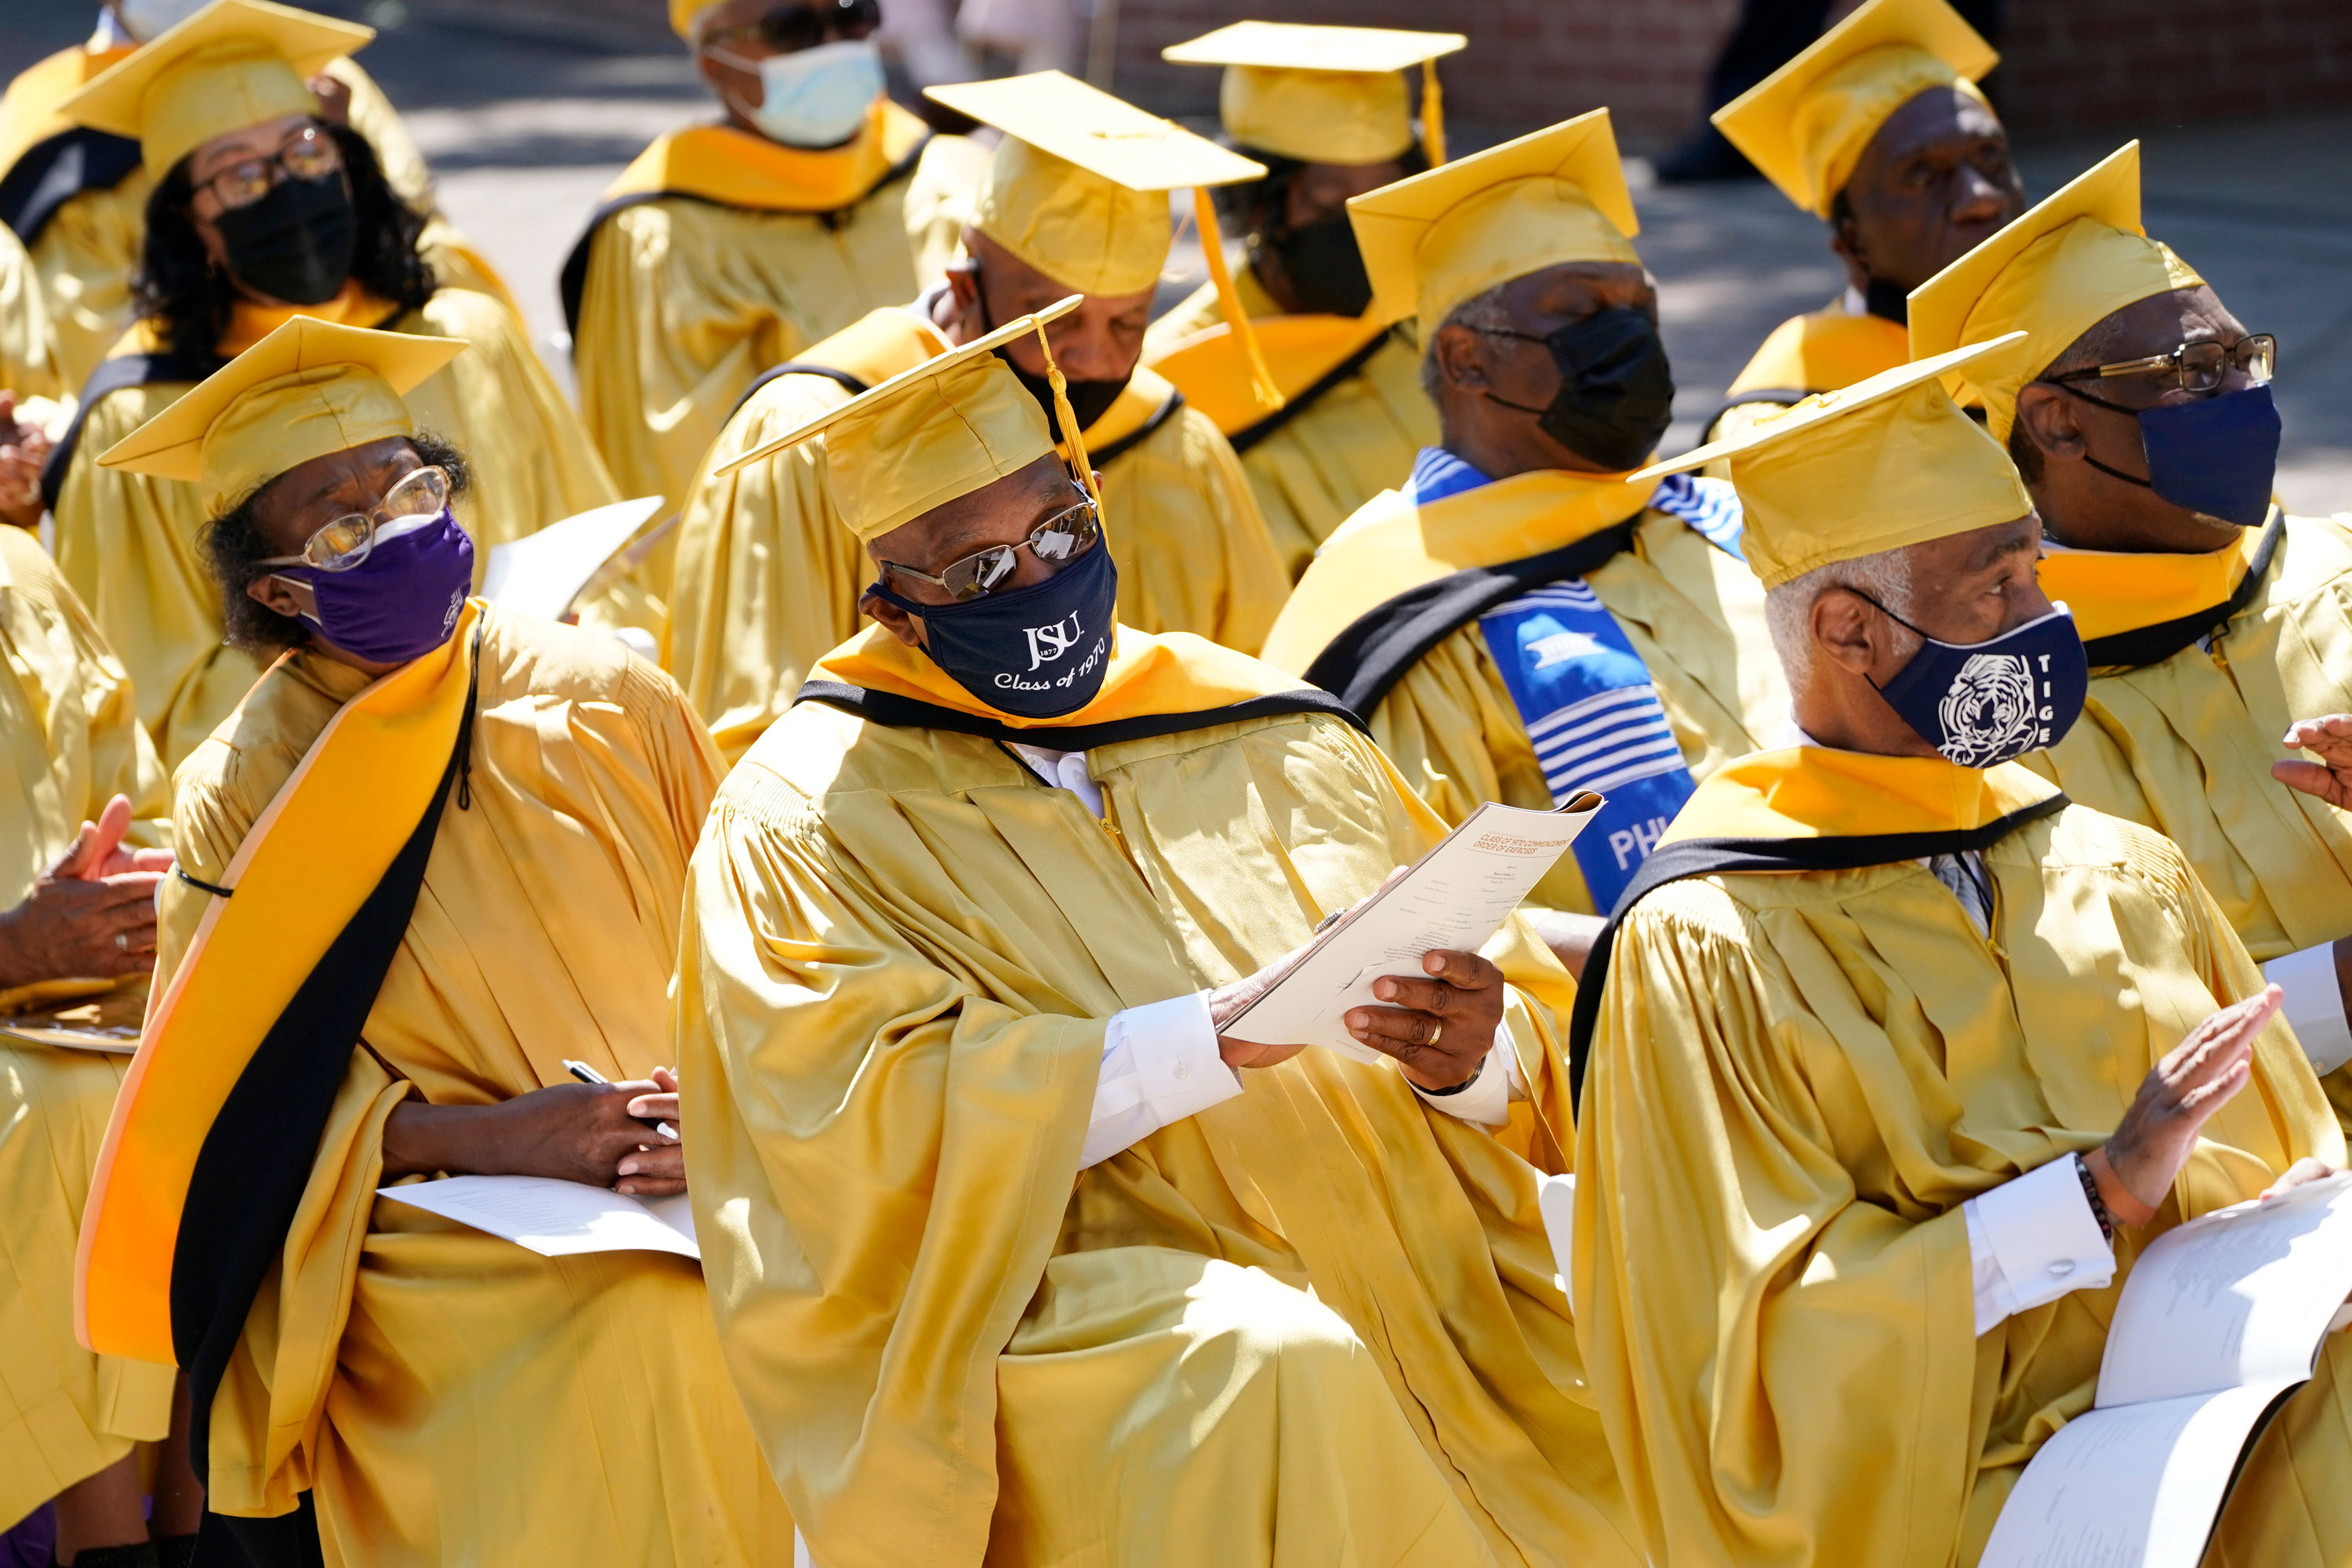 A police shooting delayed this Black college's graduation in 1970. Now, those students finally got their ceremony — and an apology